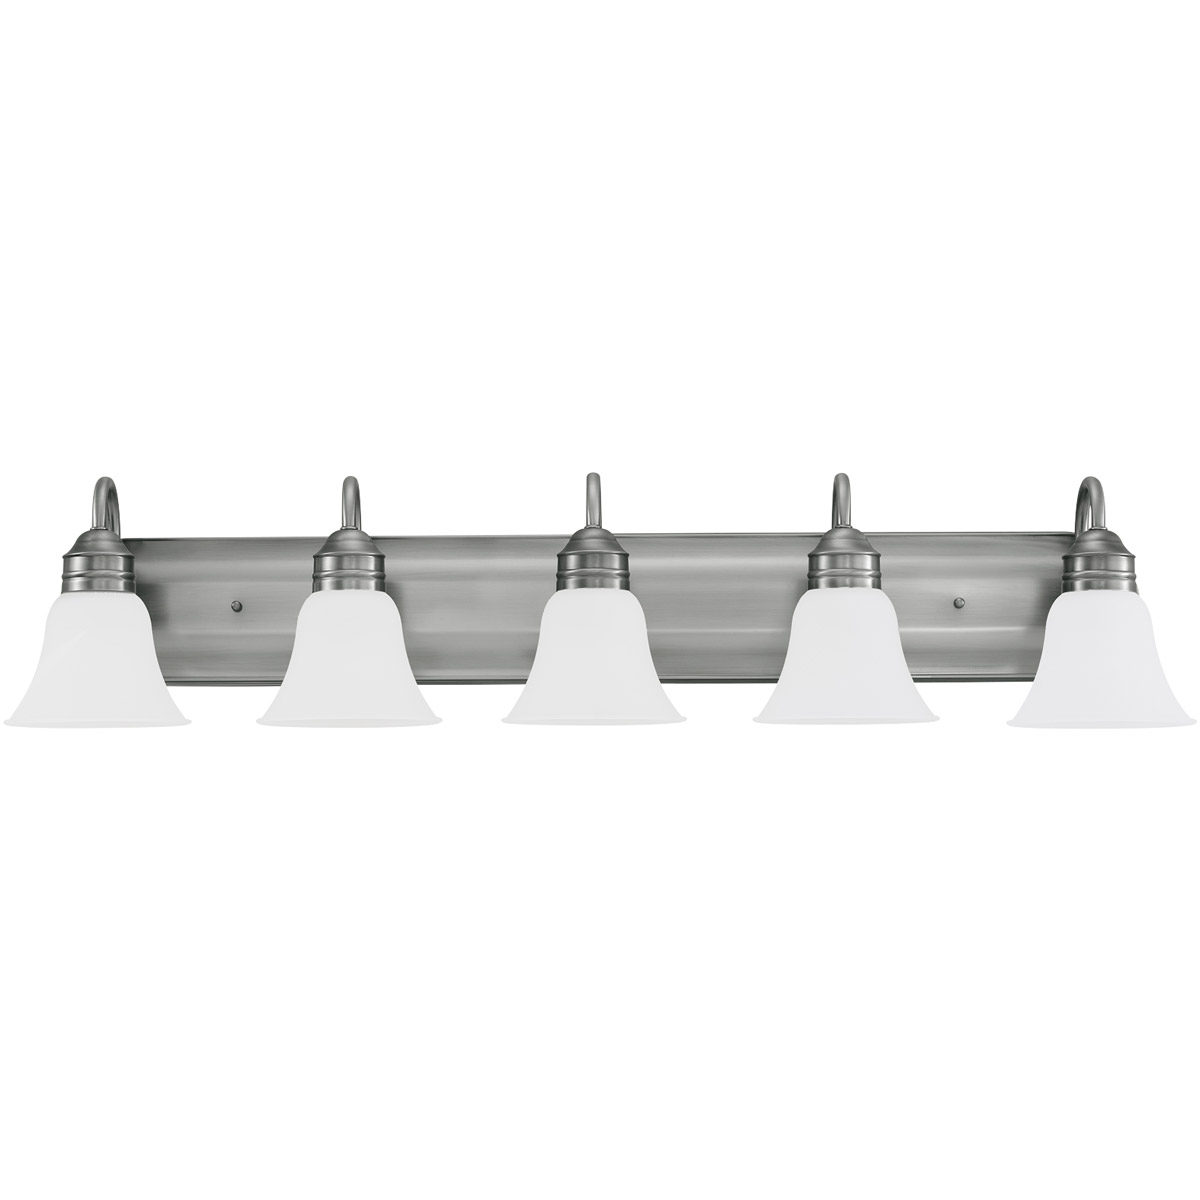 Sea Gull 44854-965 Gladstone 5 Light 41 inch Antique Brushed Nickel Bath Vanity Wall Light in Satin Etched Glass, Standard photo